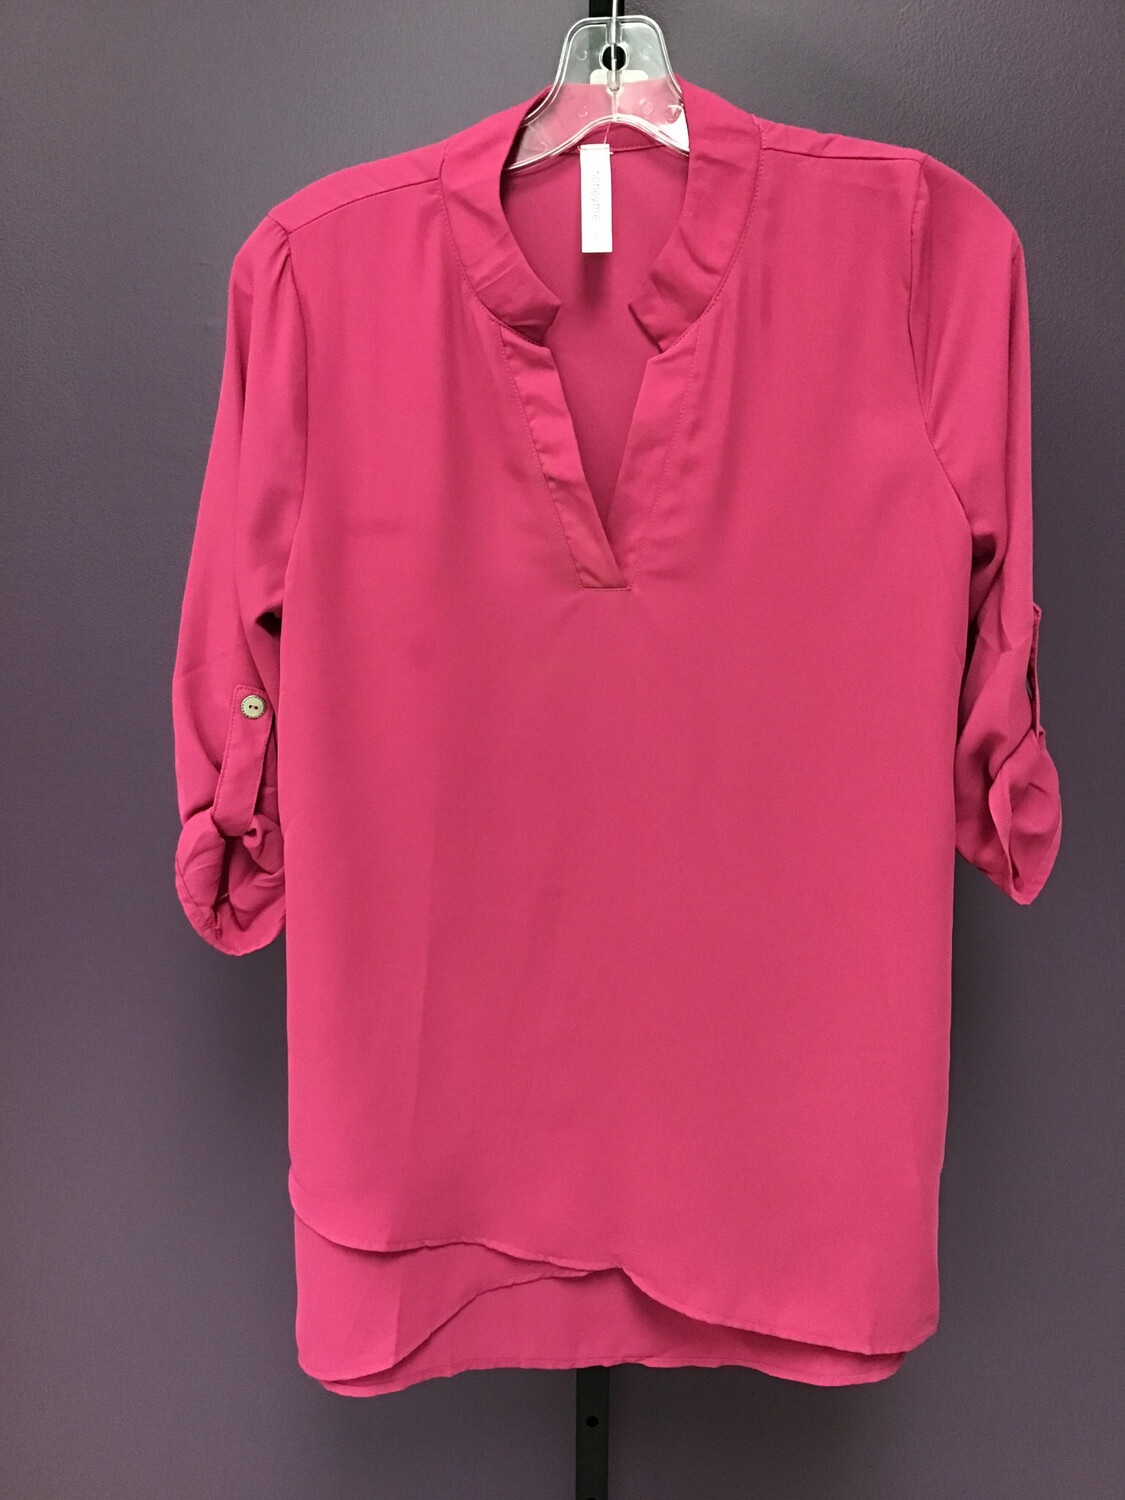 Pink 3 /4 Button Sleeve Top